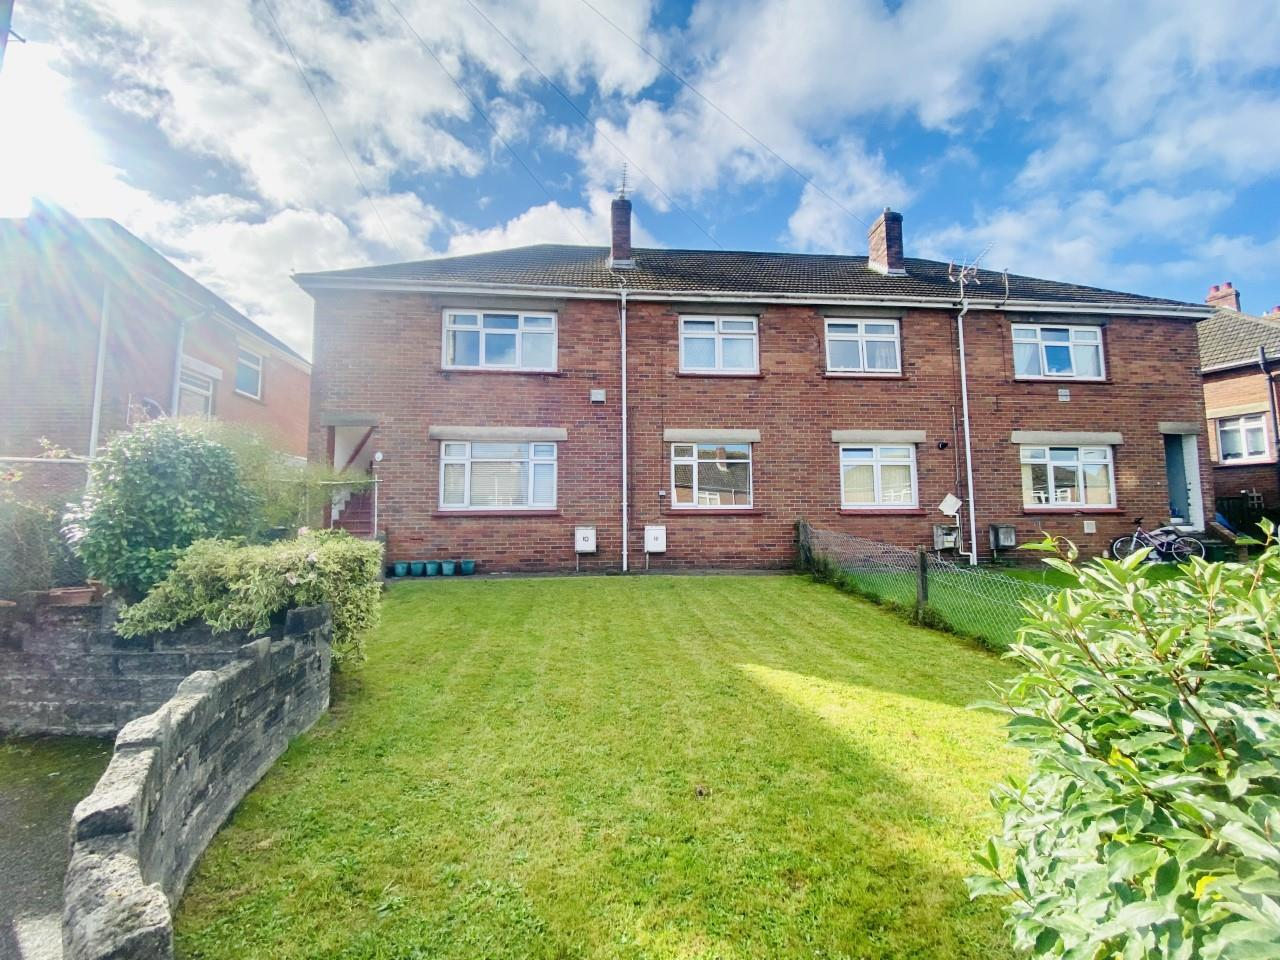 Dunraven Close, Penclawdd, Swansea, SA4 3FT